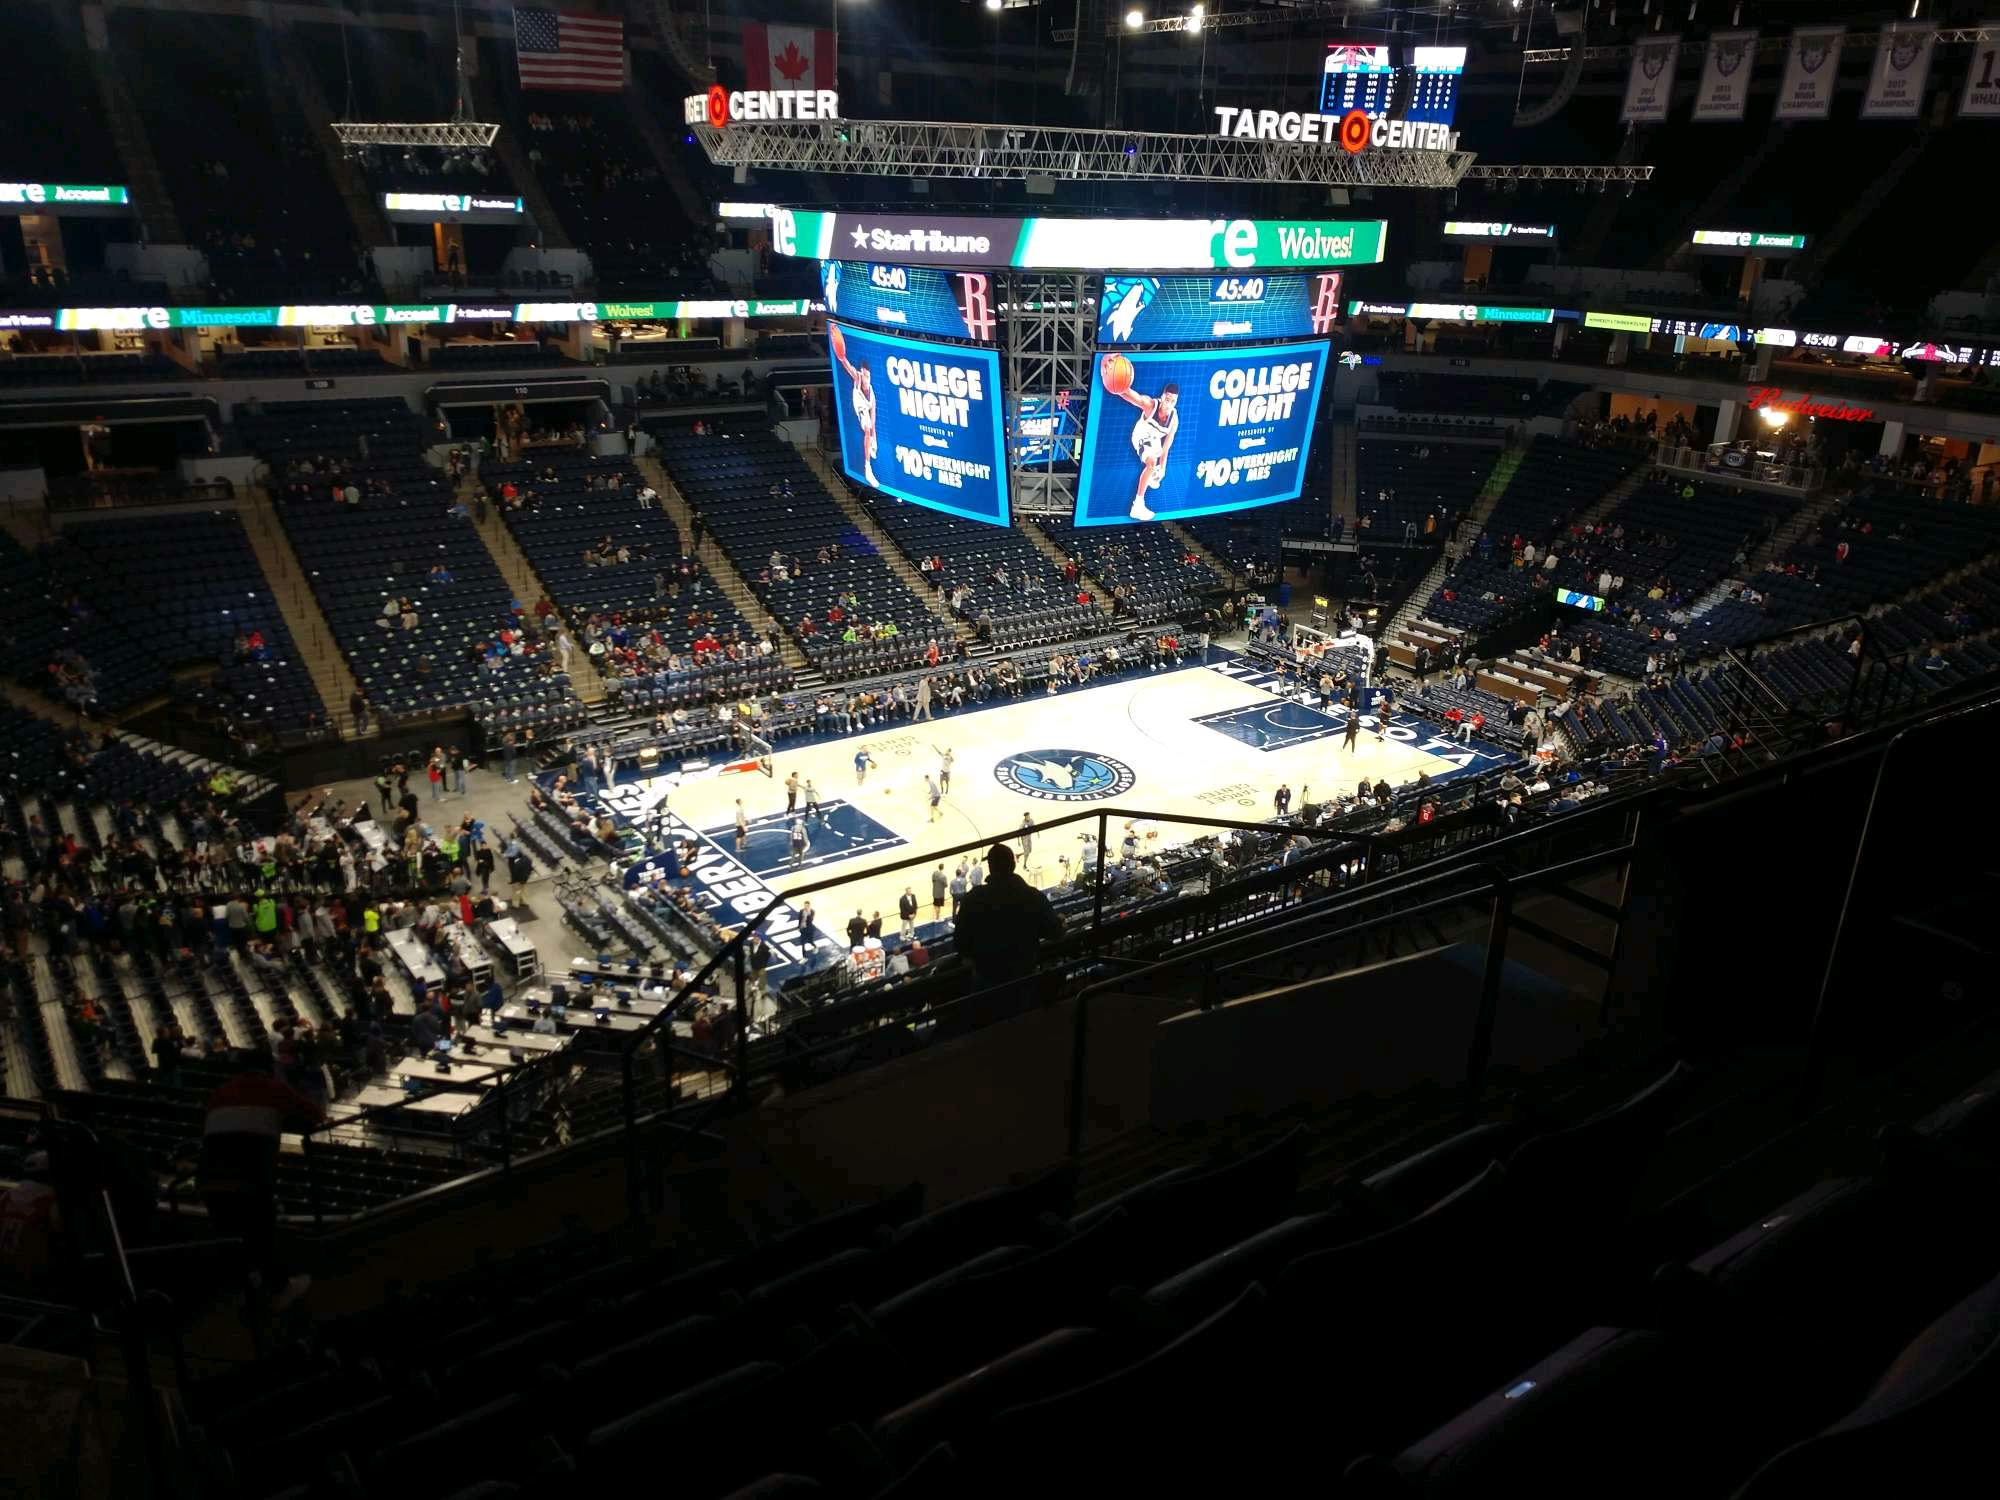 Target Center Section 235 Row L Seat 5